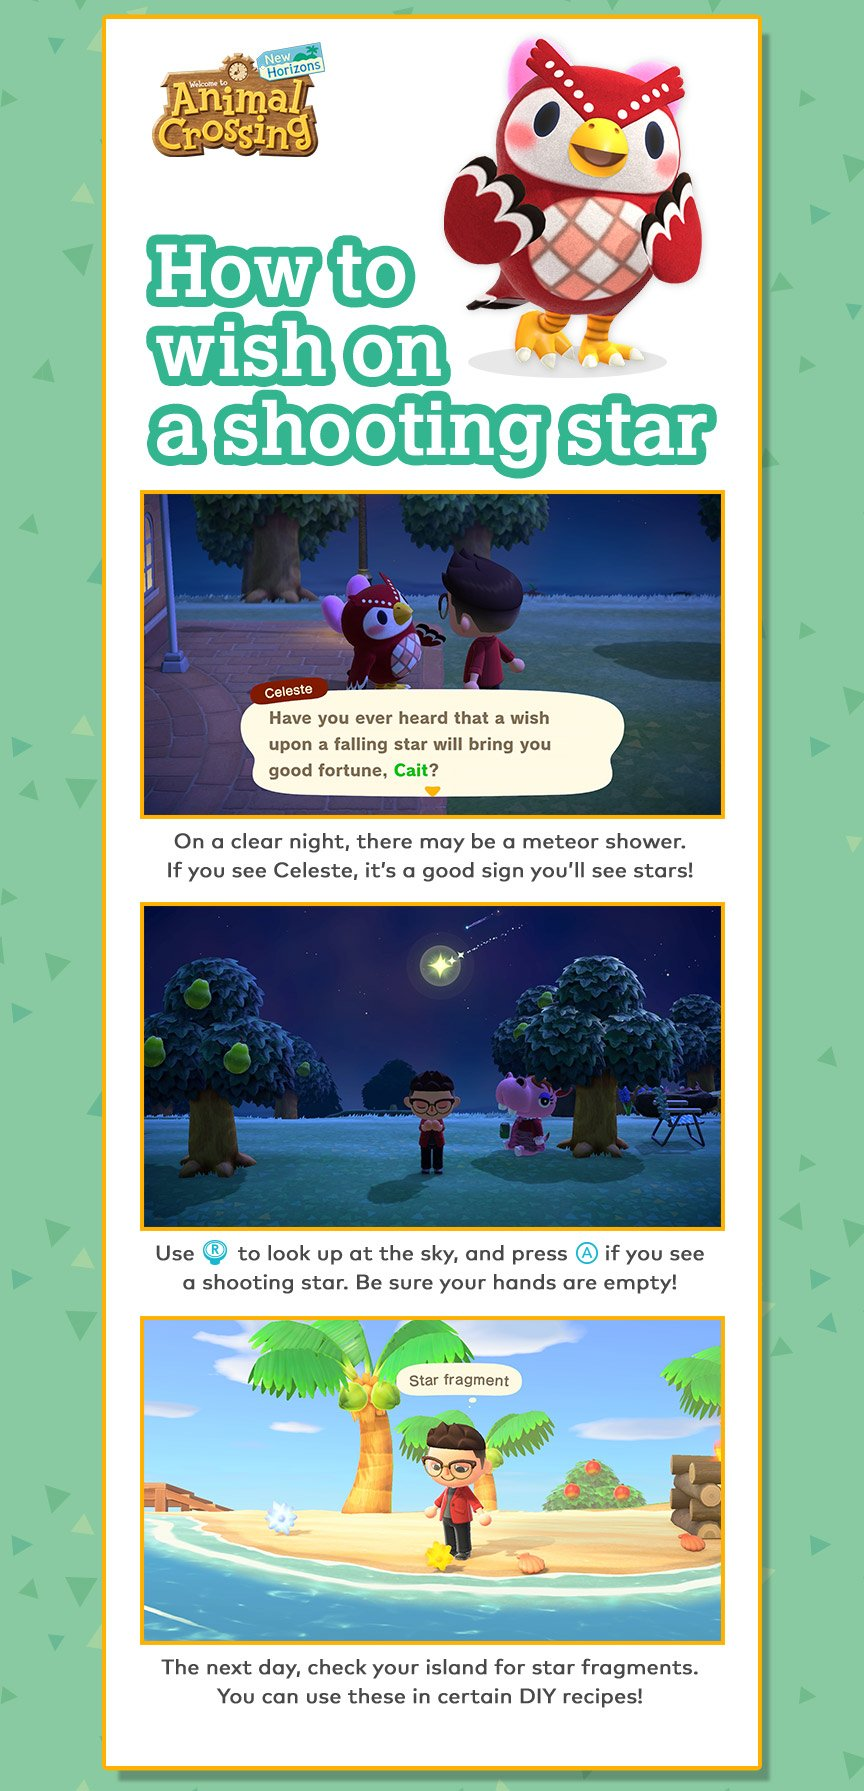 On a clear night, there may be a meteor shower. If you see Celeste, it's a good sign you'll see stars! Use [R] to look up at the sky, and press [A] if you see a shooting star. Be sure your hands are empty! The next day, check your island for star fragment